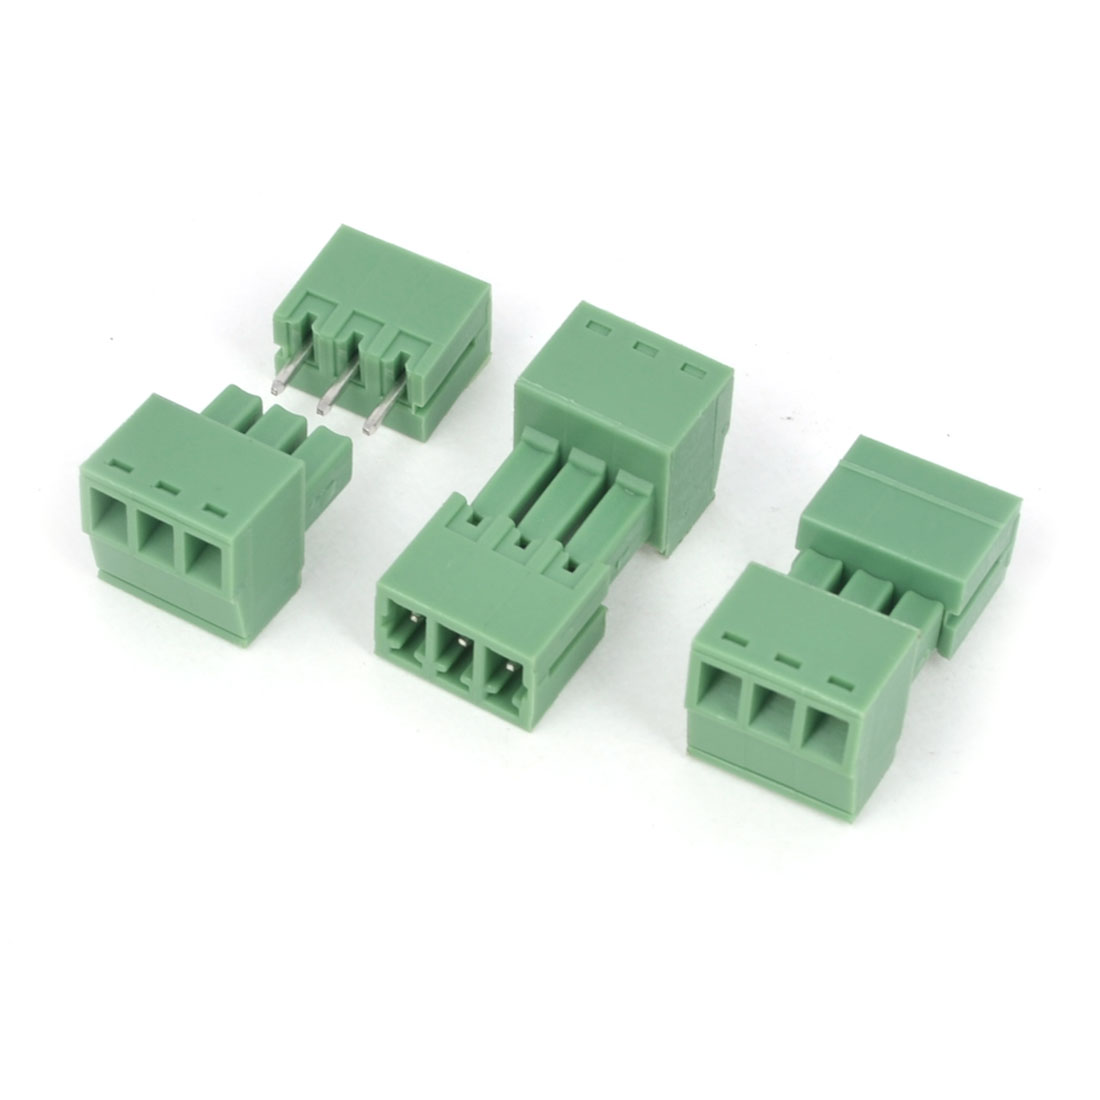 3Pcs AC 300V 8A 3P Poles PCB Screw Terminal Block Connector 3.5mm Pitch Green